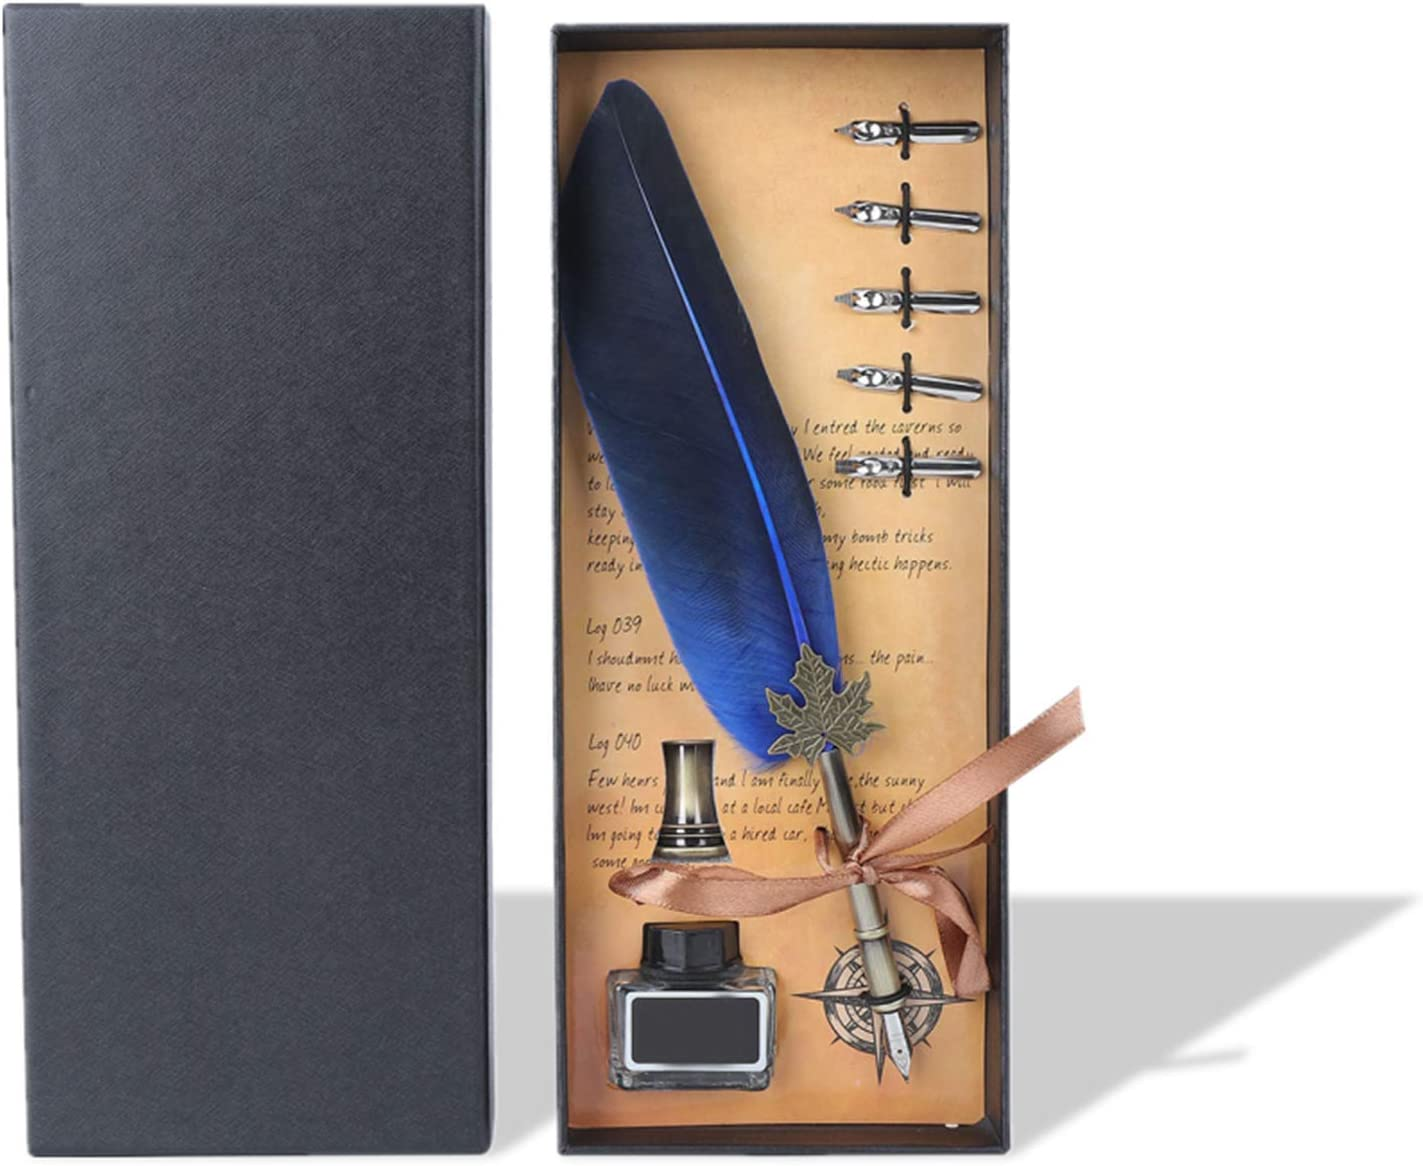 EBTOOLS sale Quill Pen Dip Unique Hand Ranking TOP12 Gift Drawing Elegant for